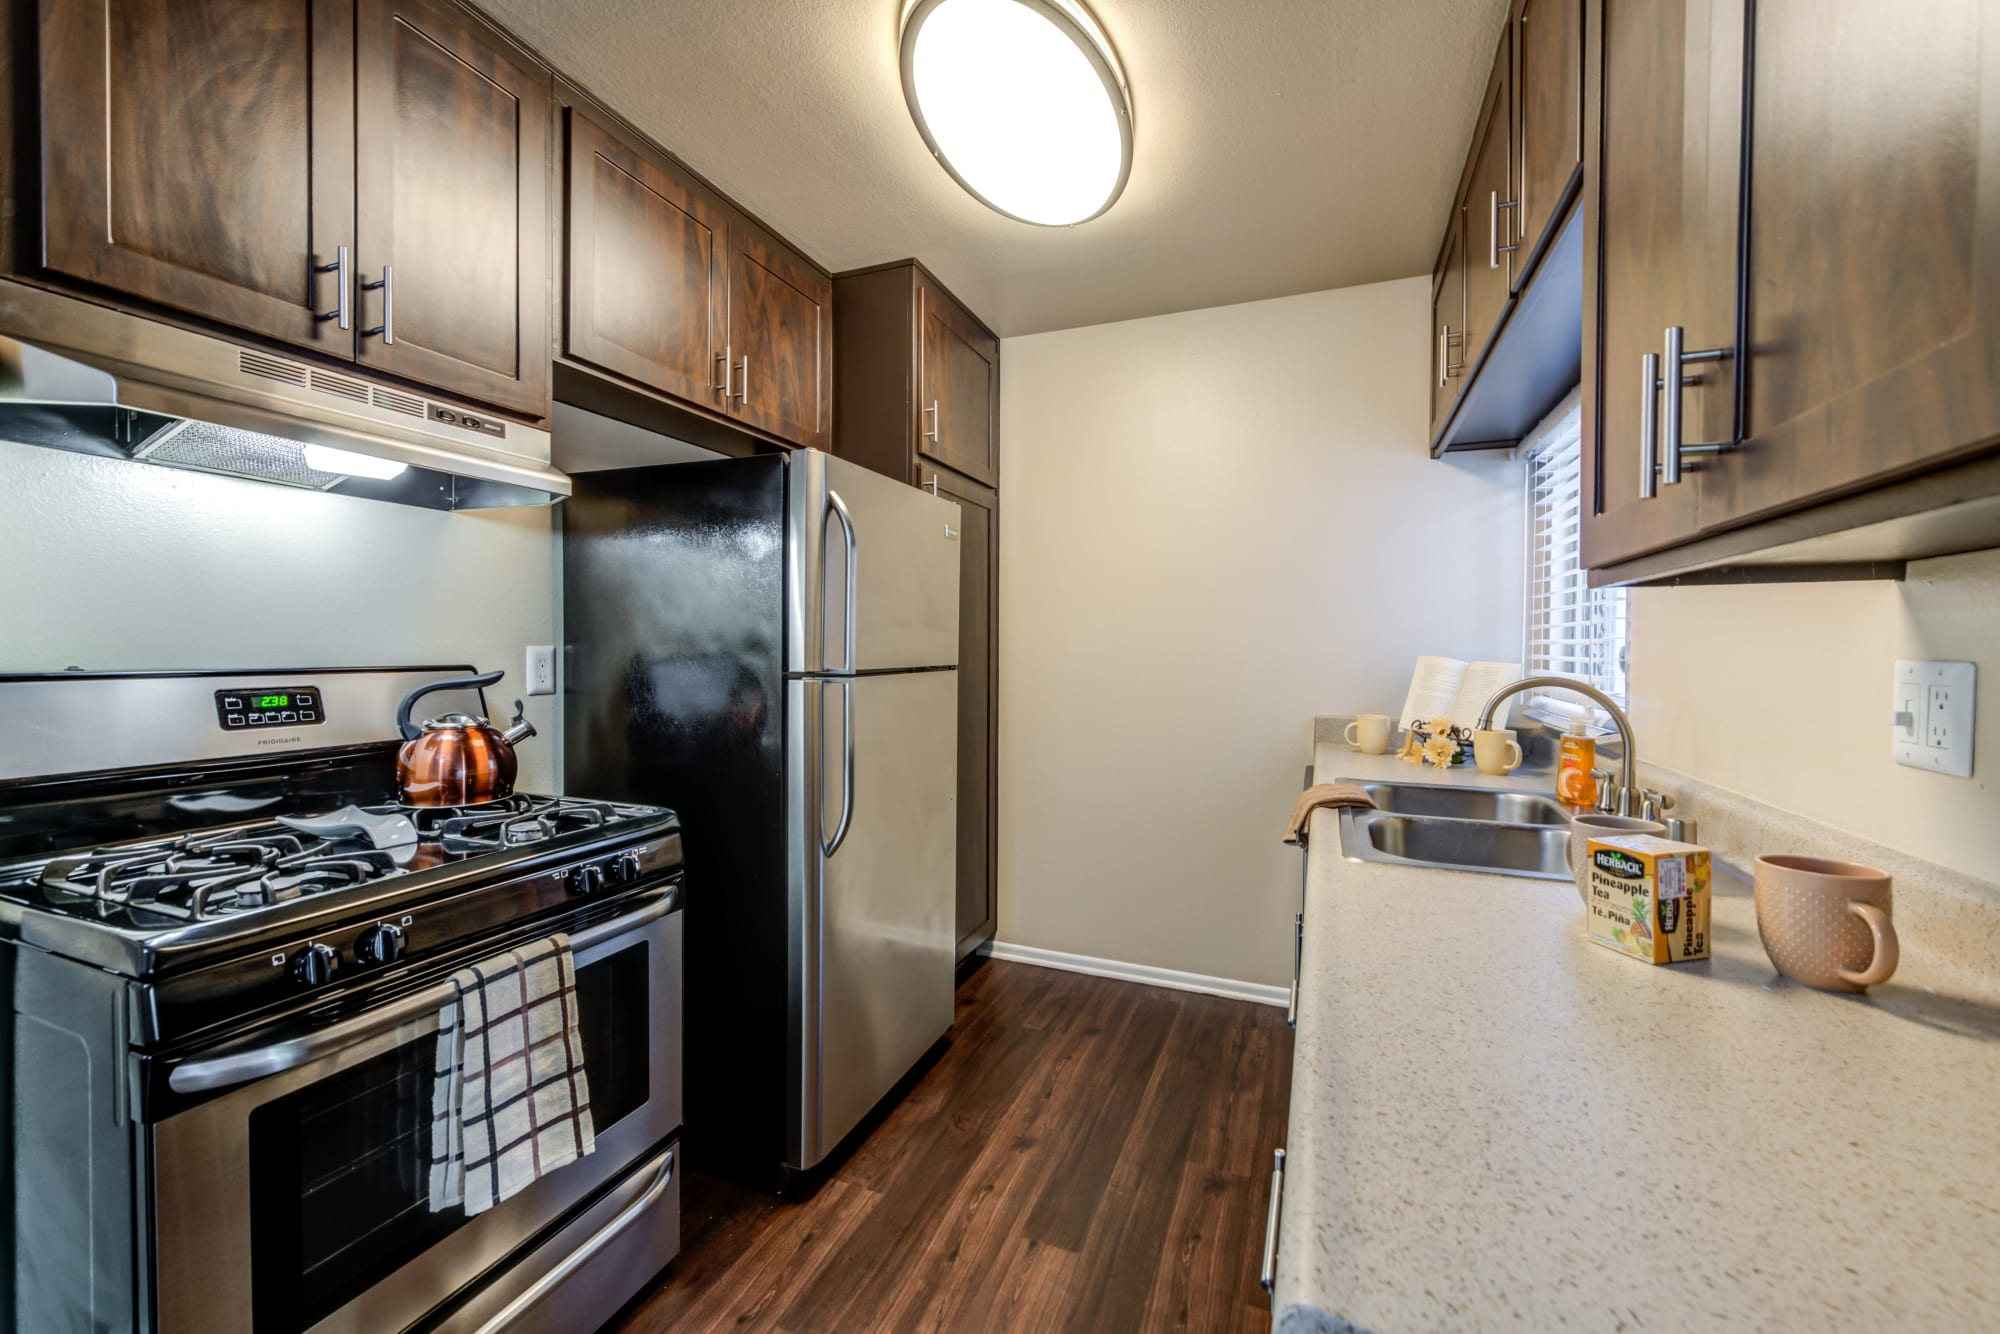 Renovated kitchen with brown cabinets and stainless steel appliances at Kendallwood Apartments in Whittier, California